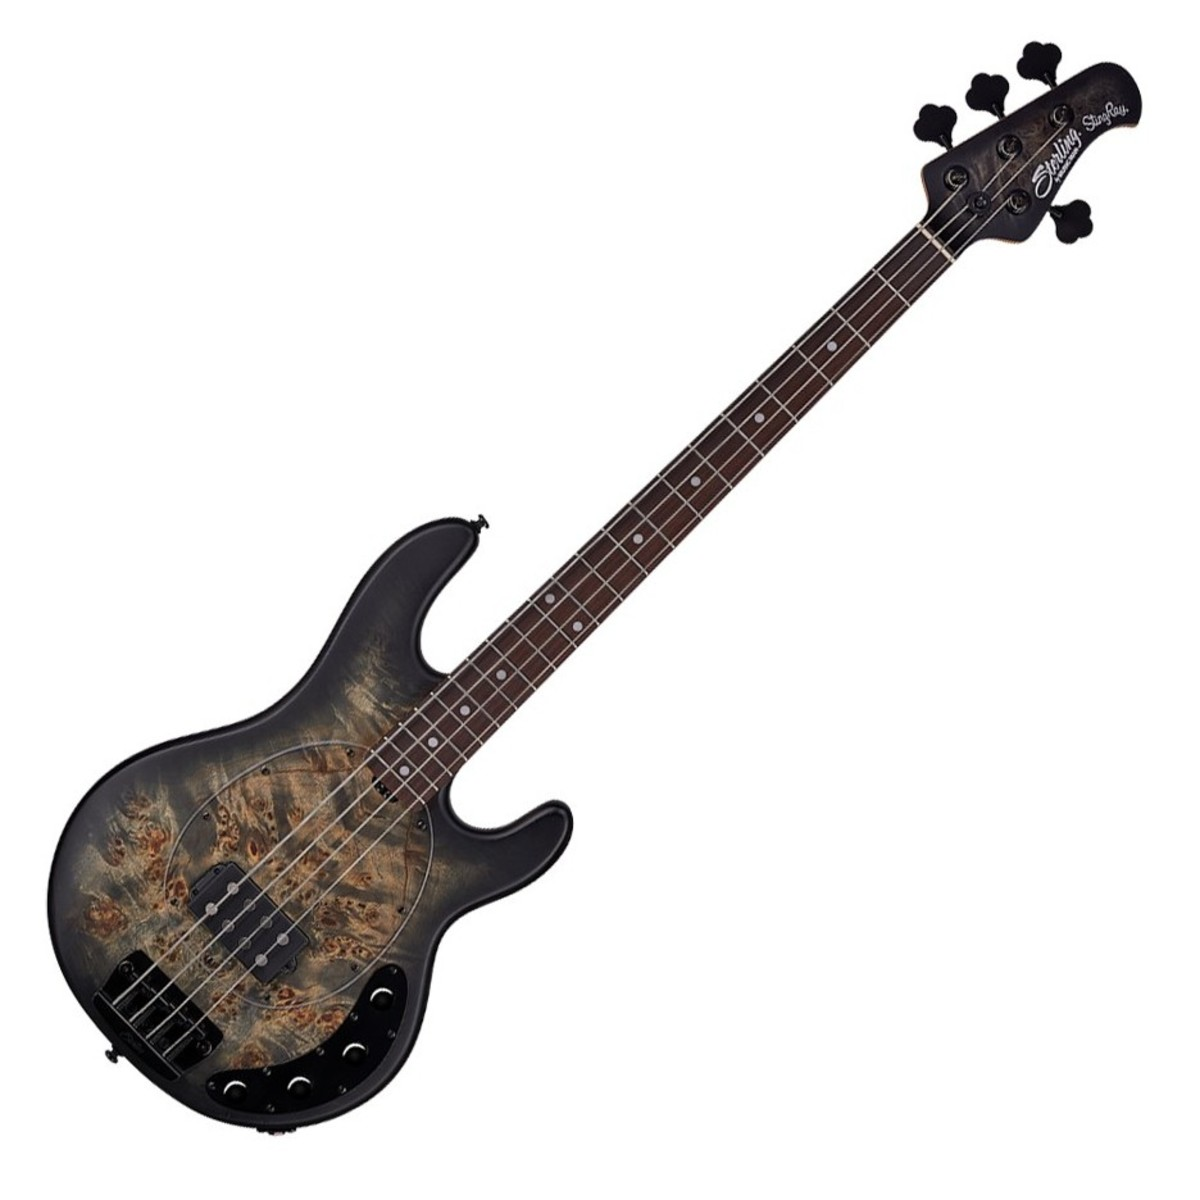 sterling by music man stingray bass rw trans black satin at gear4music. Black Bedroom Furniture Sets. Home Design Ideas